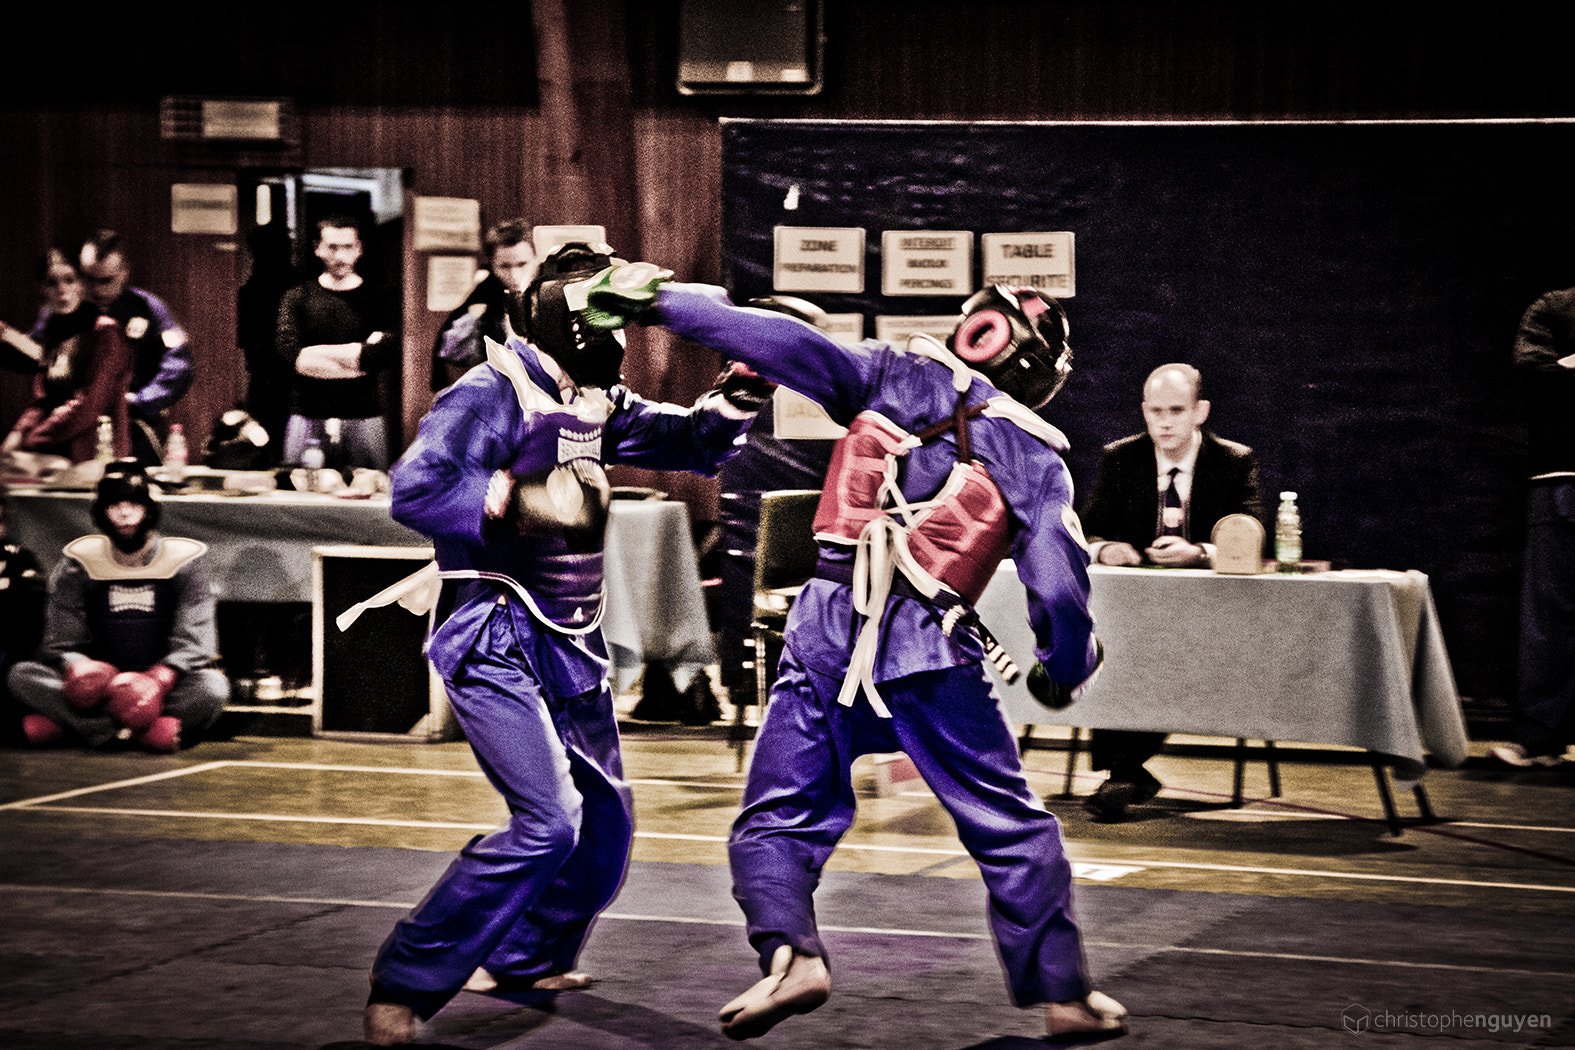 Photograph Vovinam Viet Vo Dao Belgian Championship by Christophe Nguyen on 500px